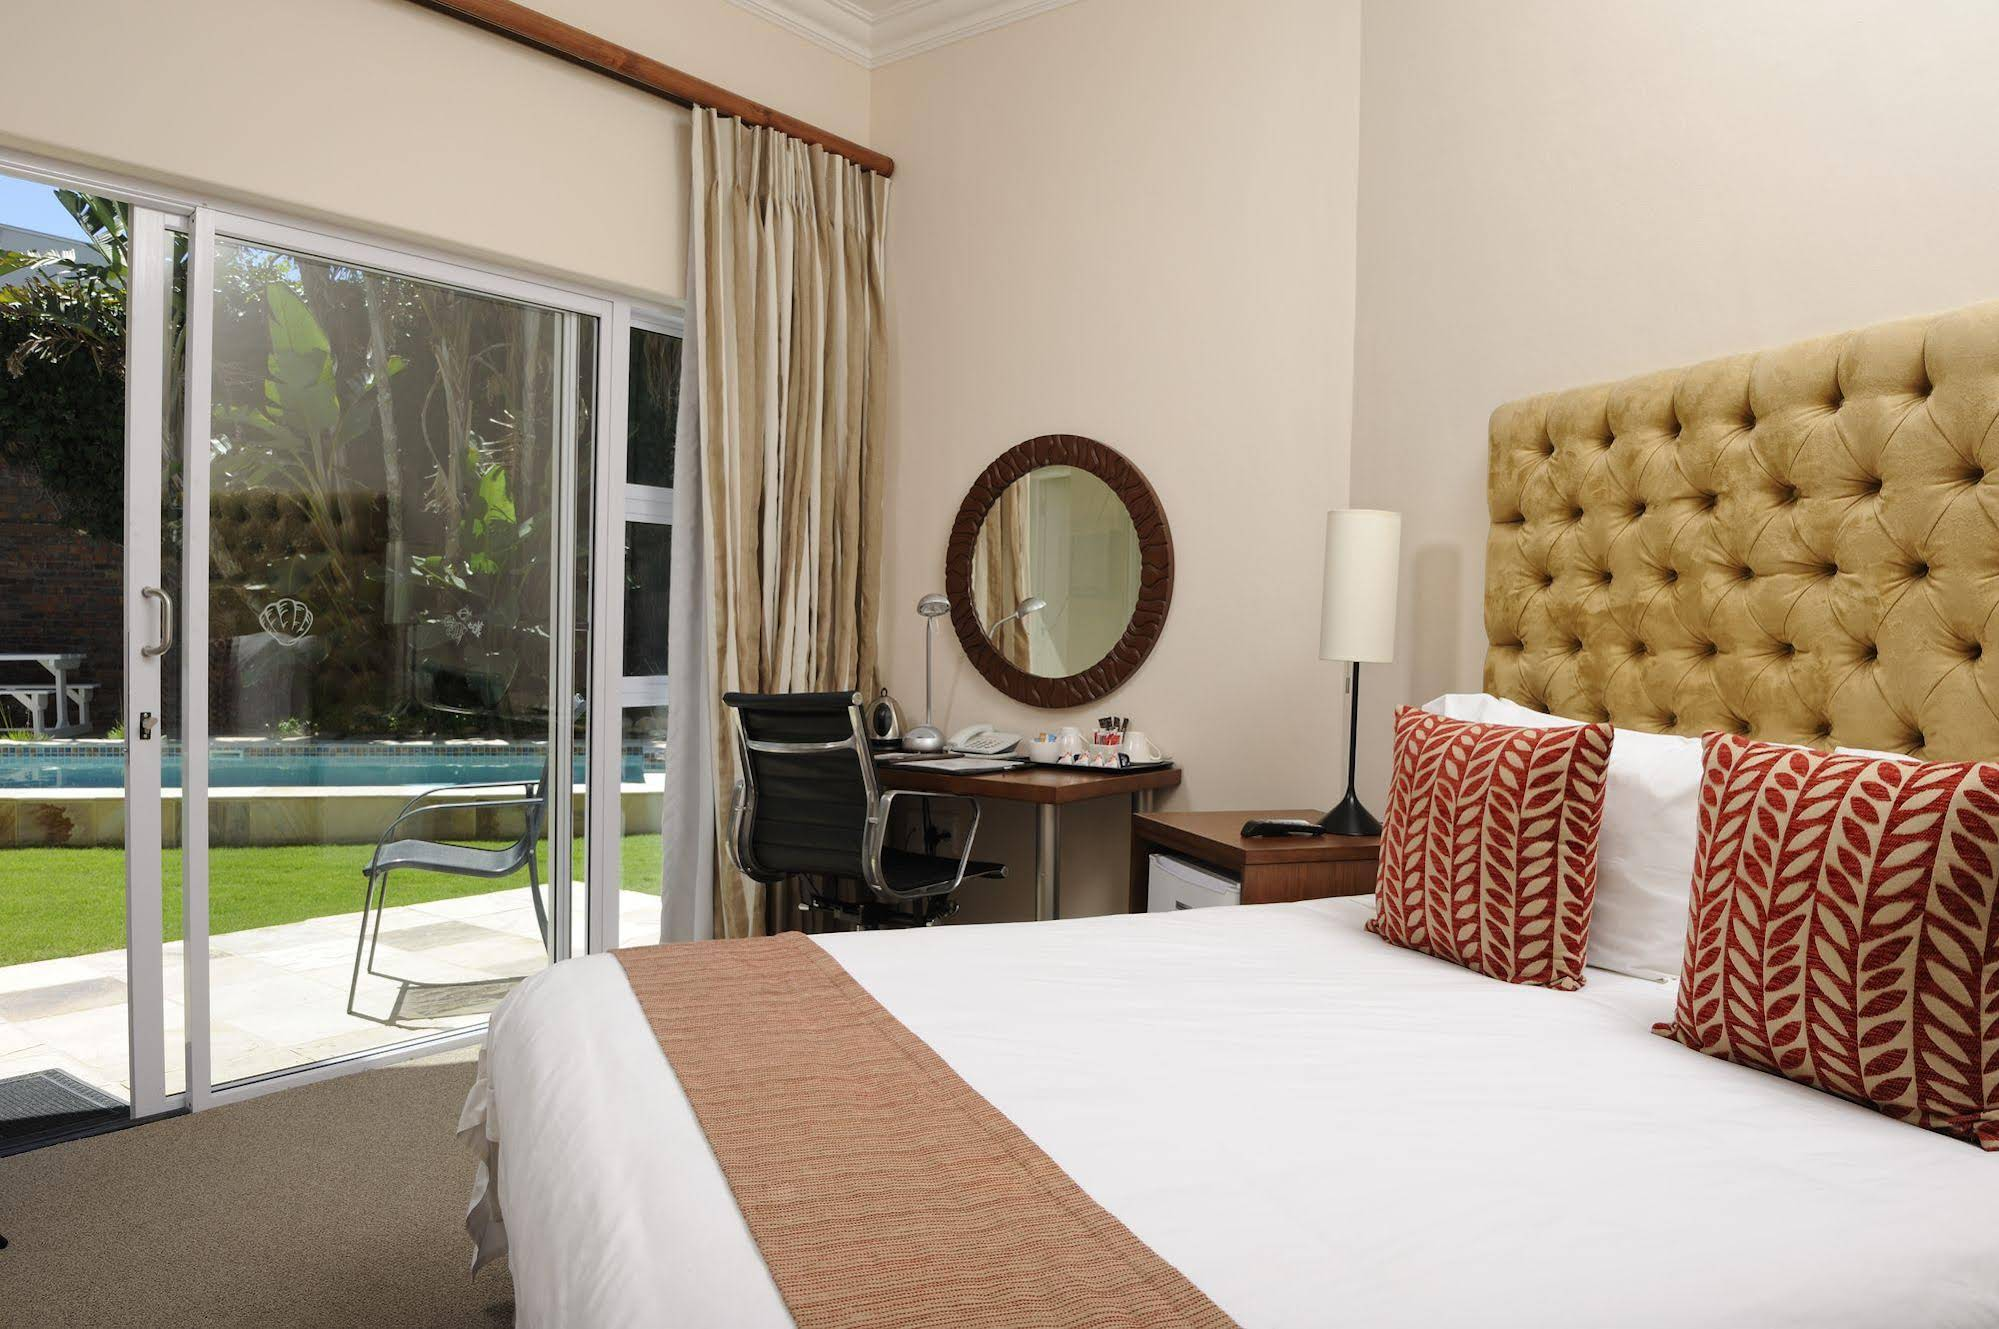 The Sir David Boutique Guest House